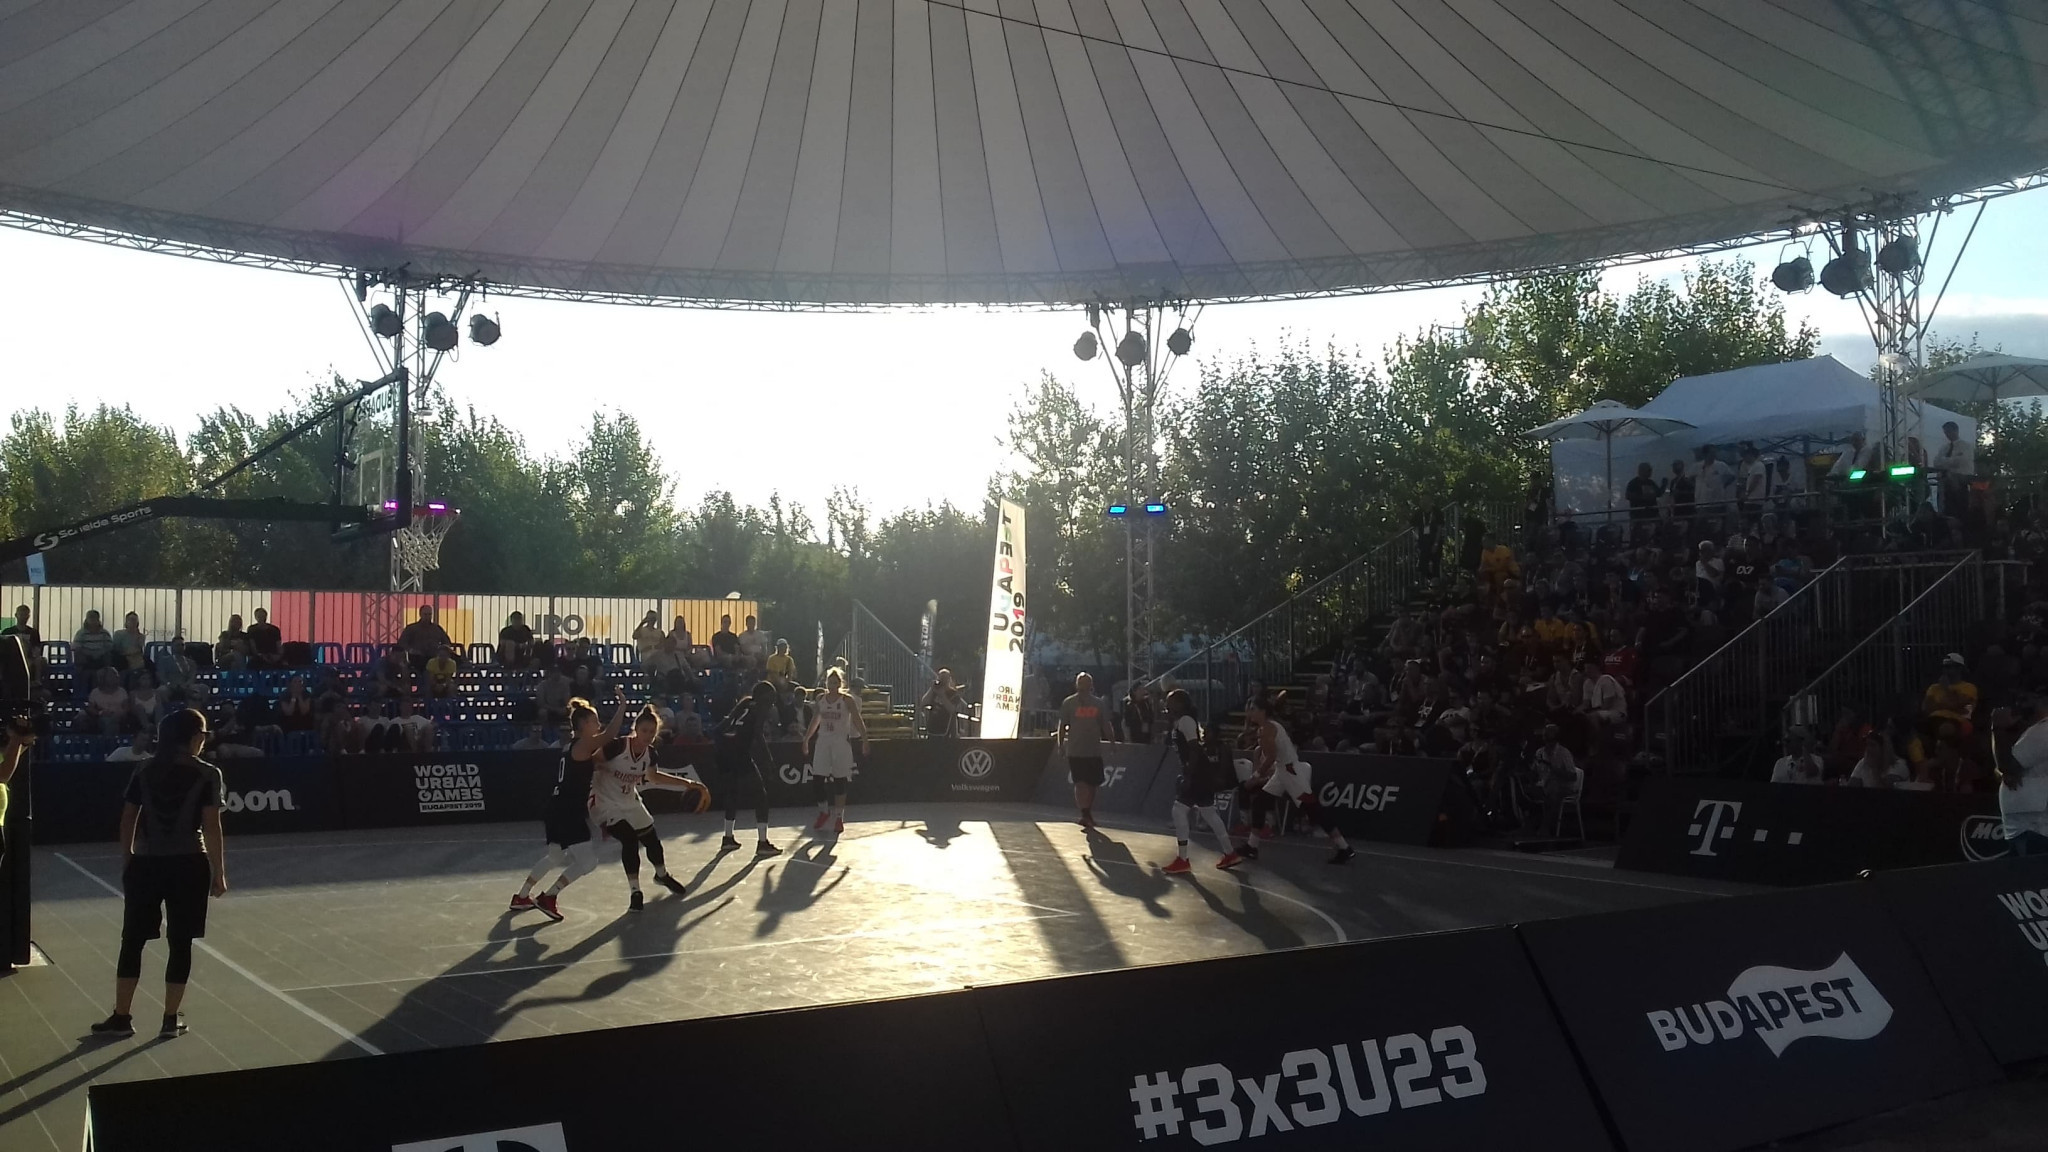 The first pool matches took place in the 3x3 basketball competitions ©ITG